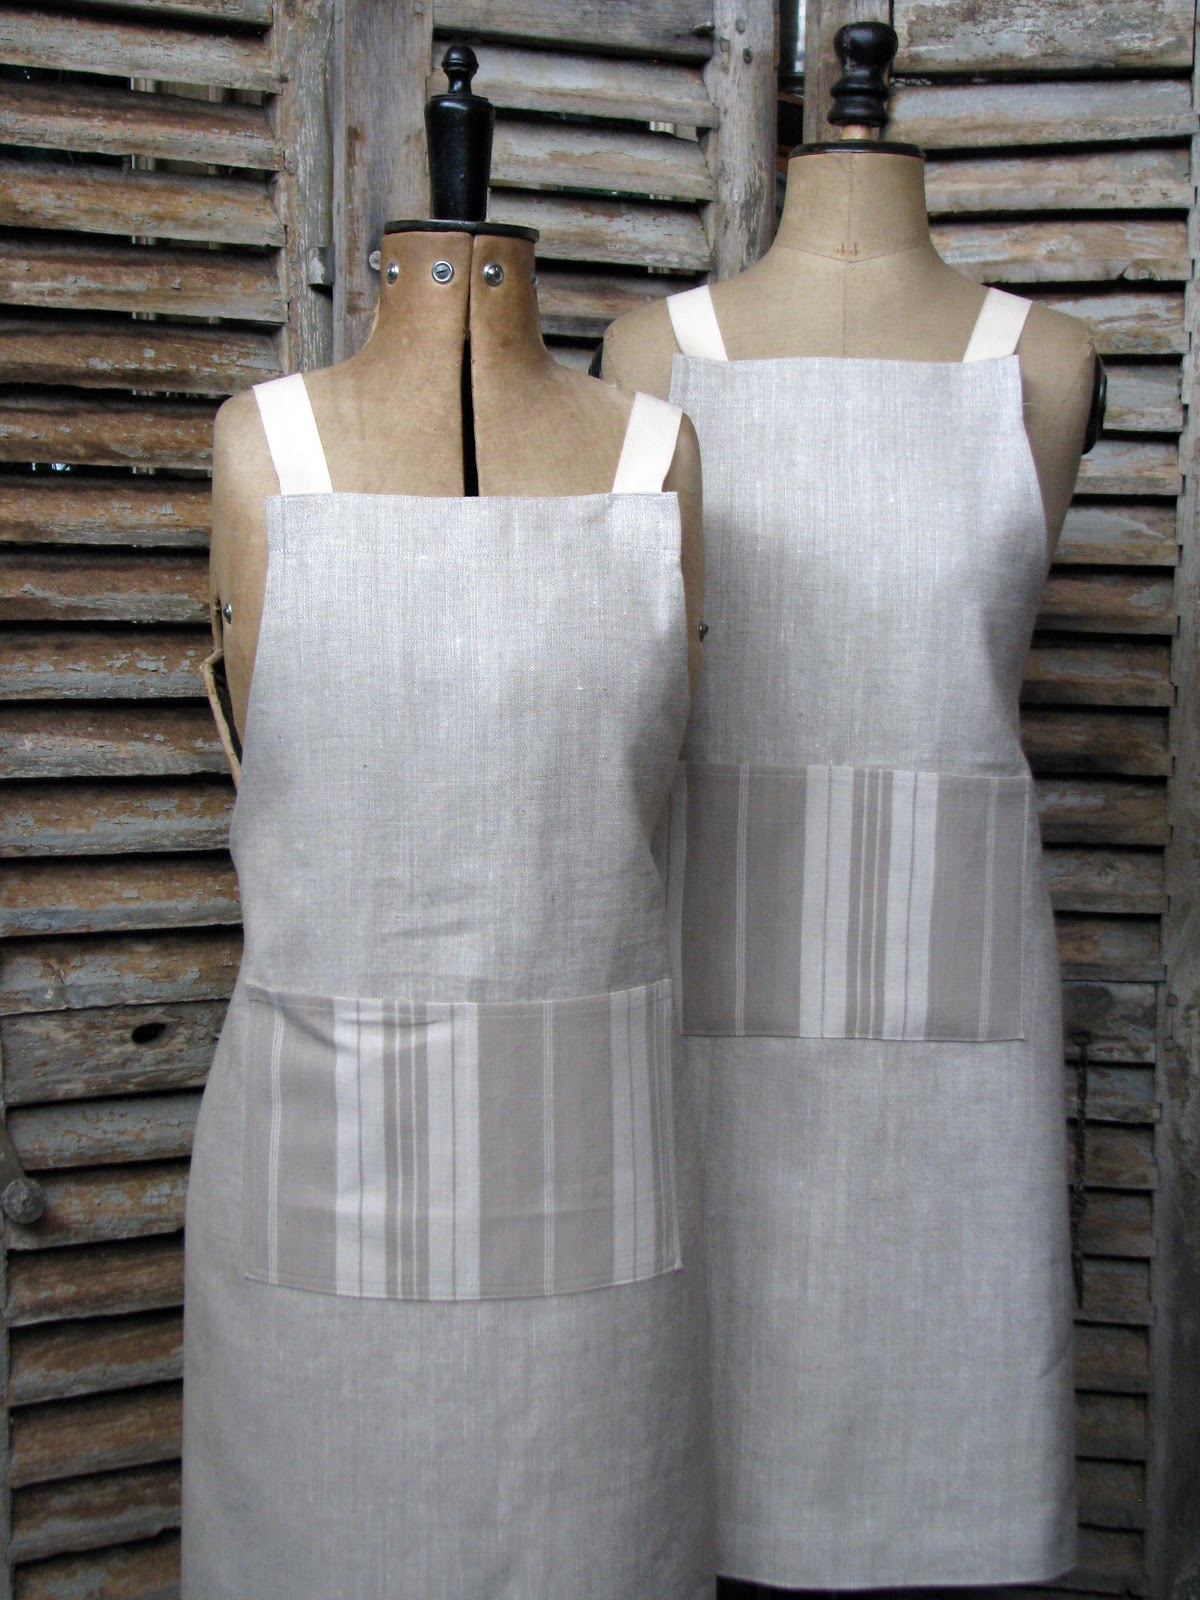 White apron melbourne - We Have Only A Small Number Available At This Stage But We Will Extend The Range To Include Aprons For Children And Also More Heavy Duty Aprons For